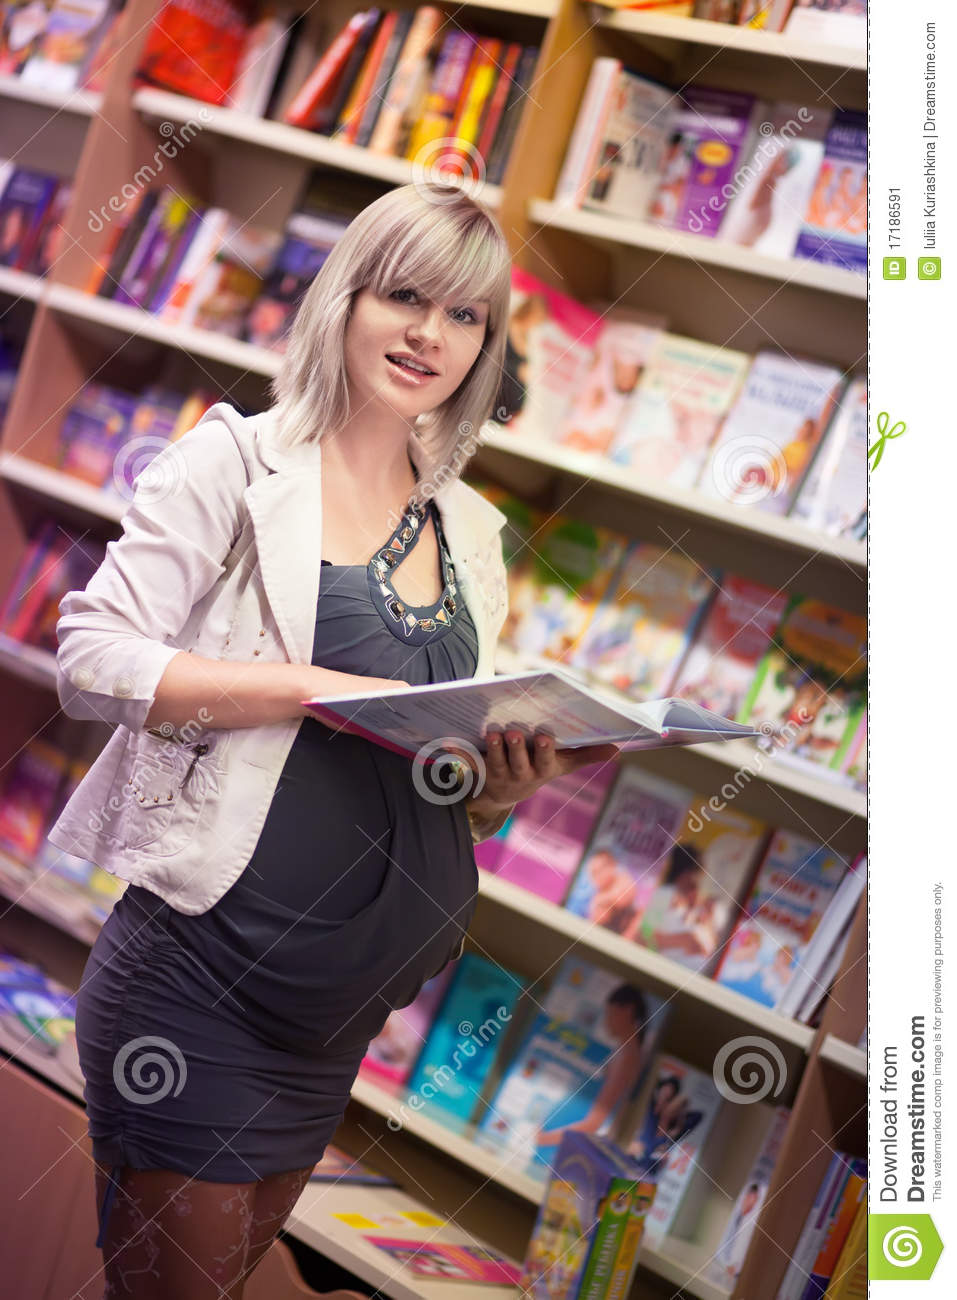 Anatomy Of Pregnant Woman Stock Image 0791 Manual Guide